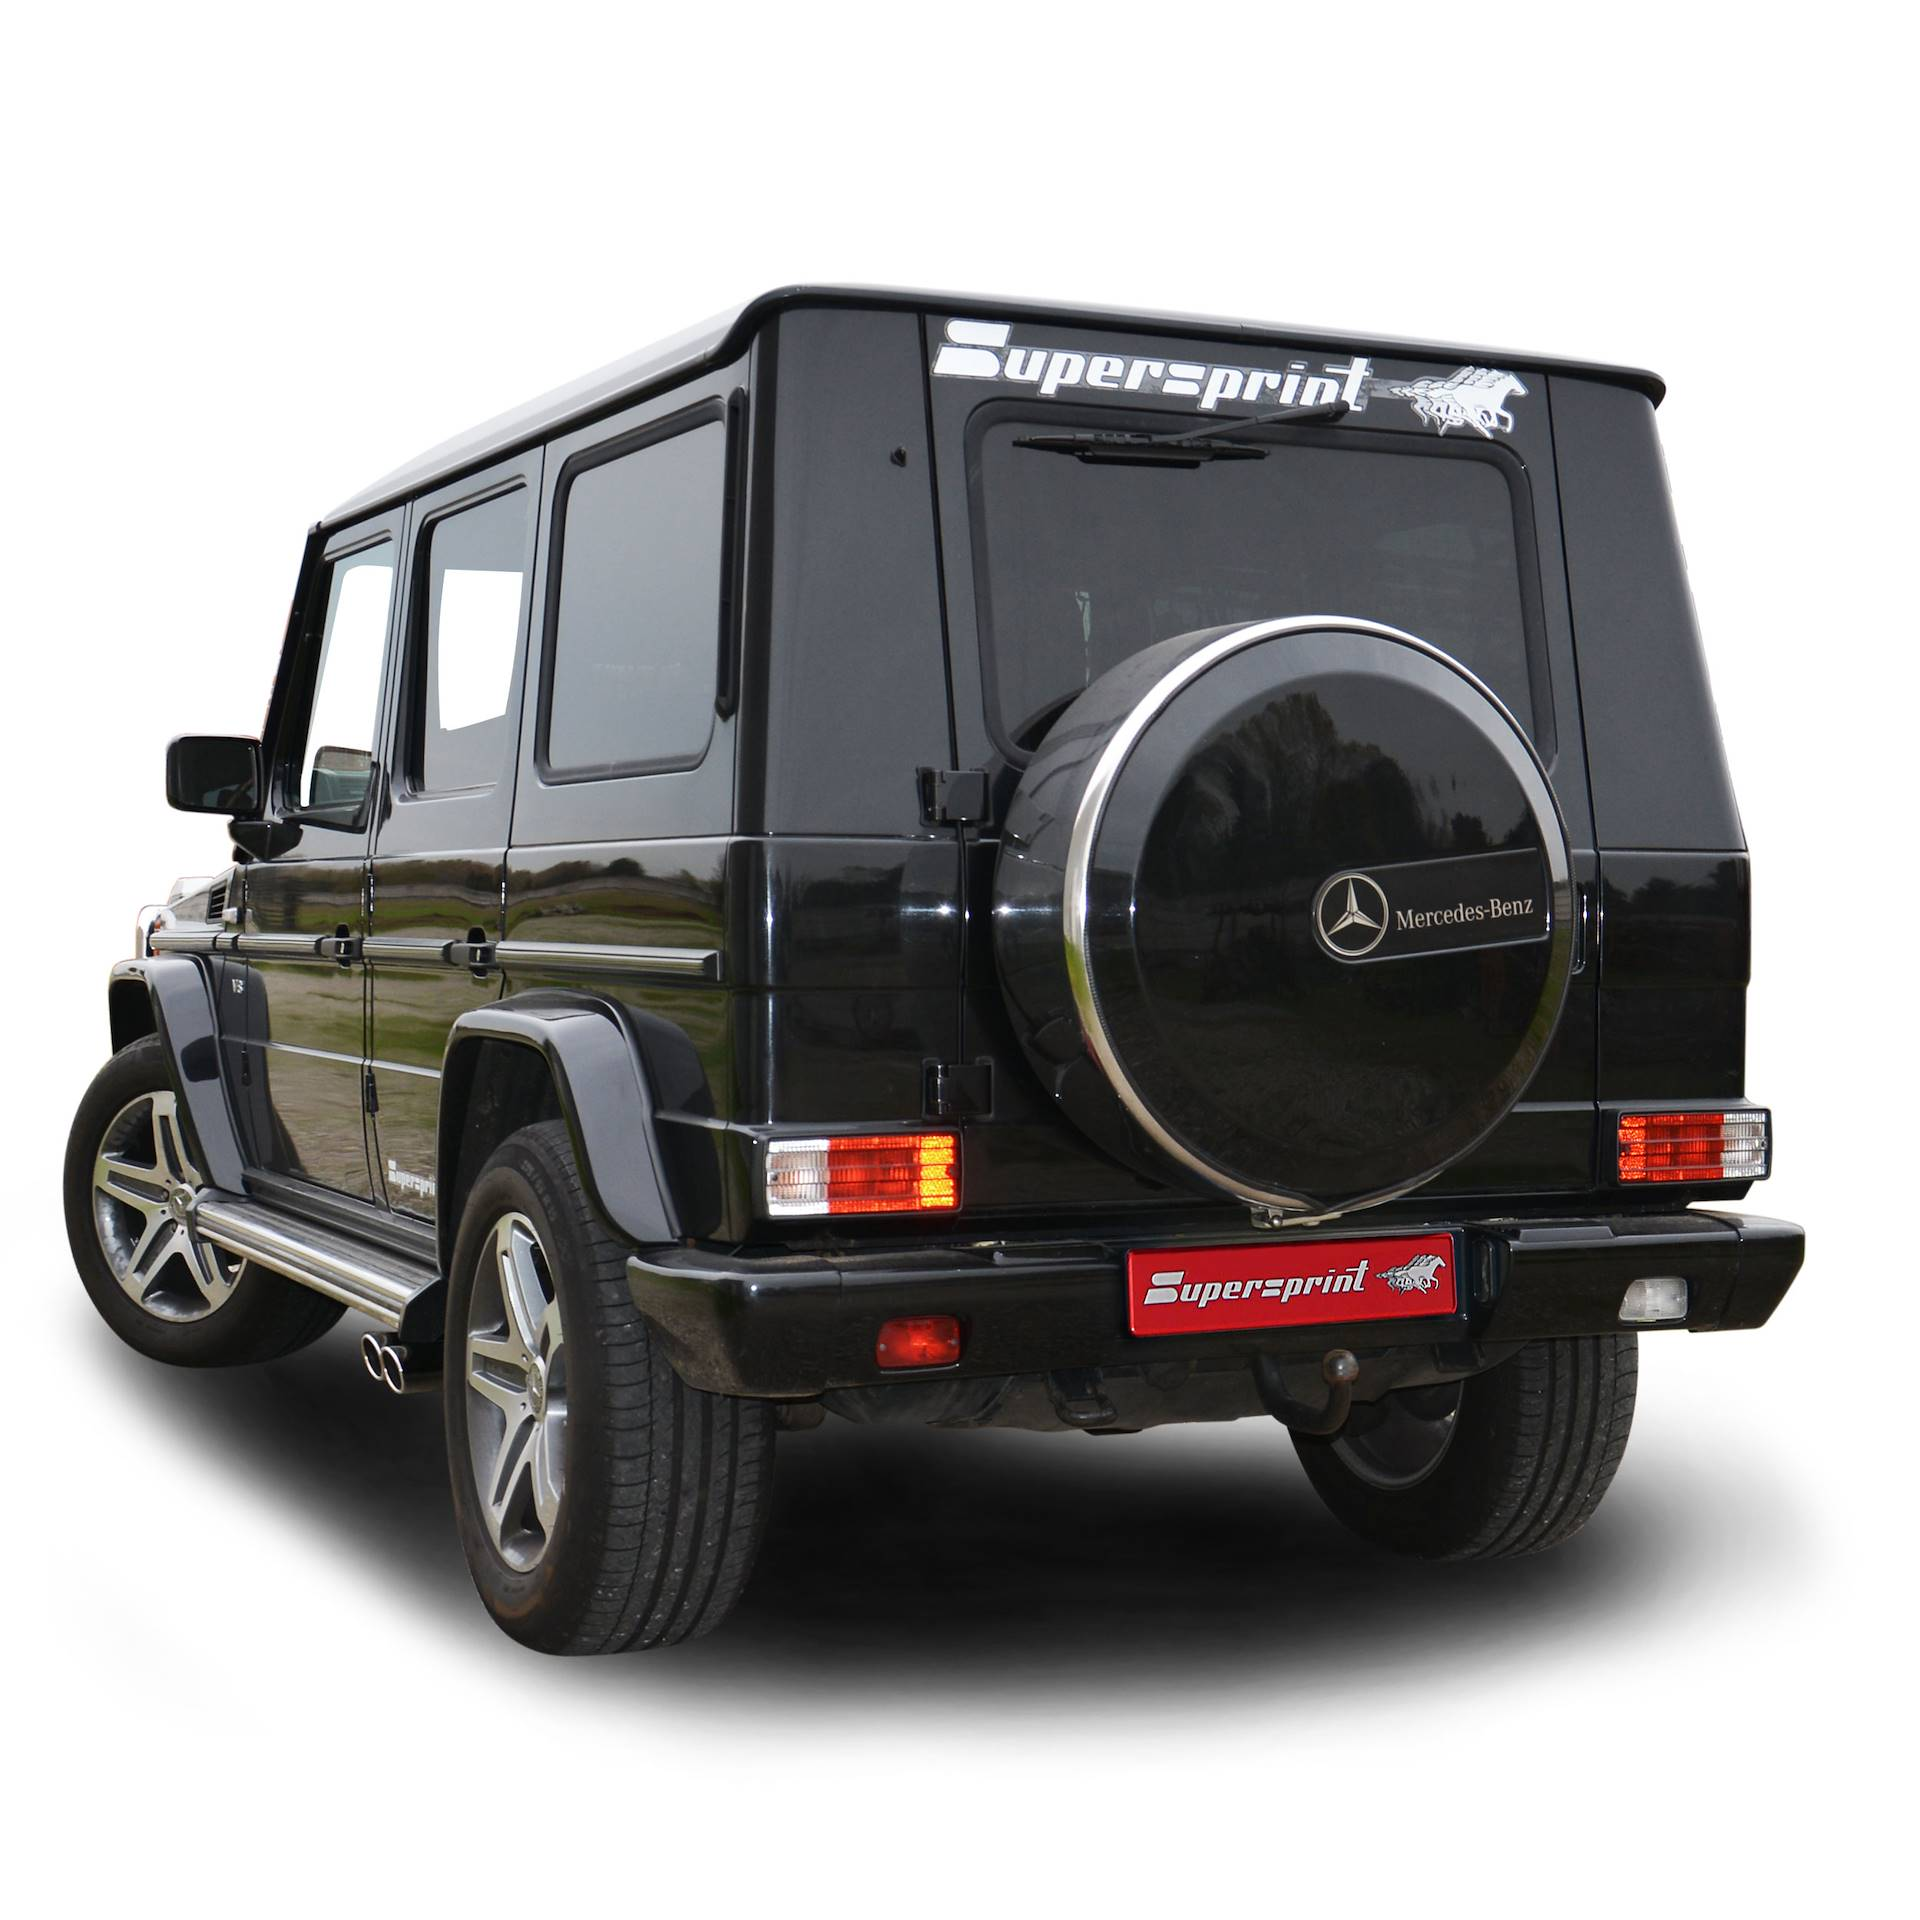 Mercedes - MERCEDES W463 (4-door) G500 V8 (M113 3v Engine) 1998 -> 2008